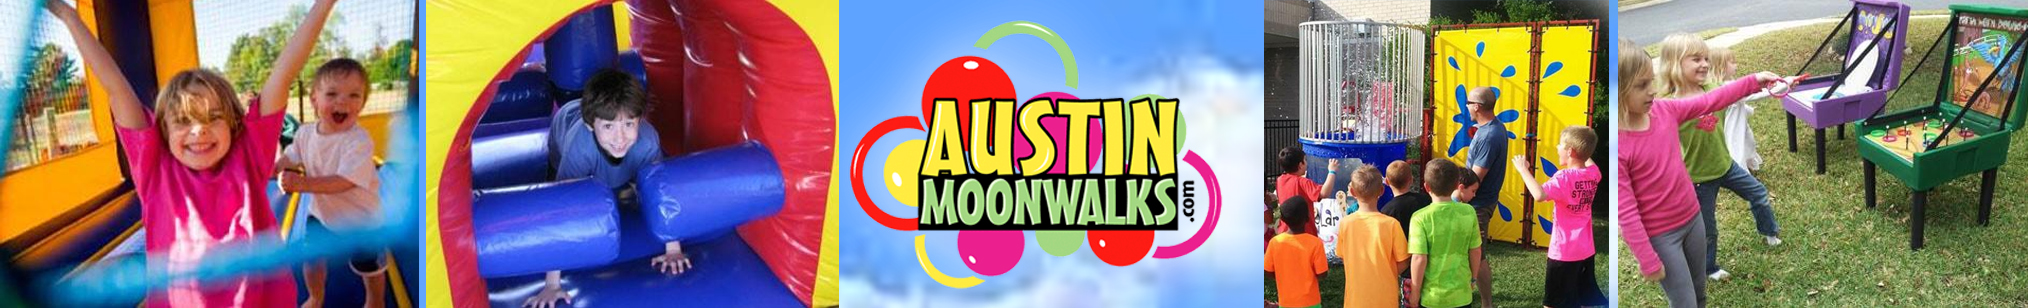 Round the Rock Birthday Party Directory - Austin Moonwalks